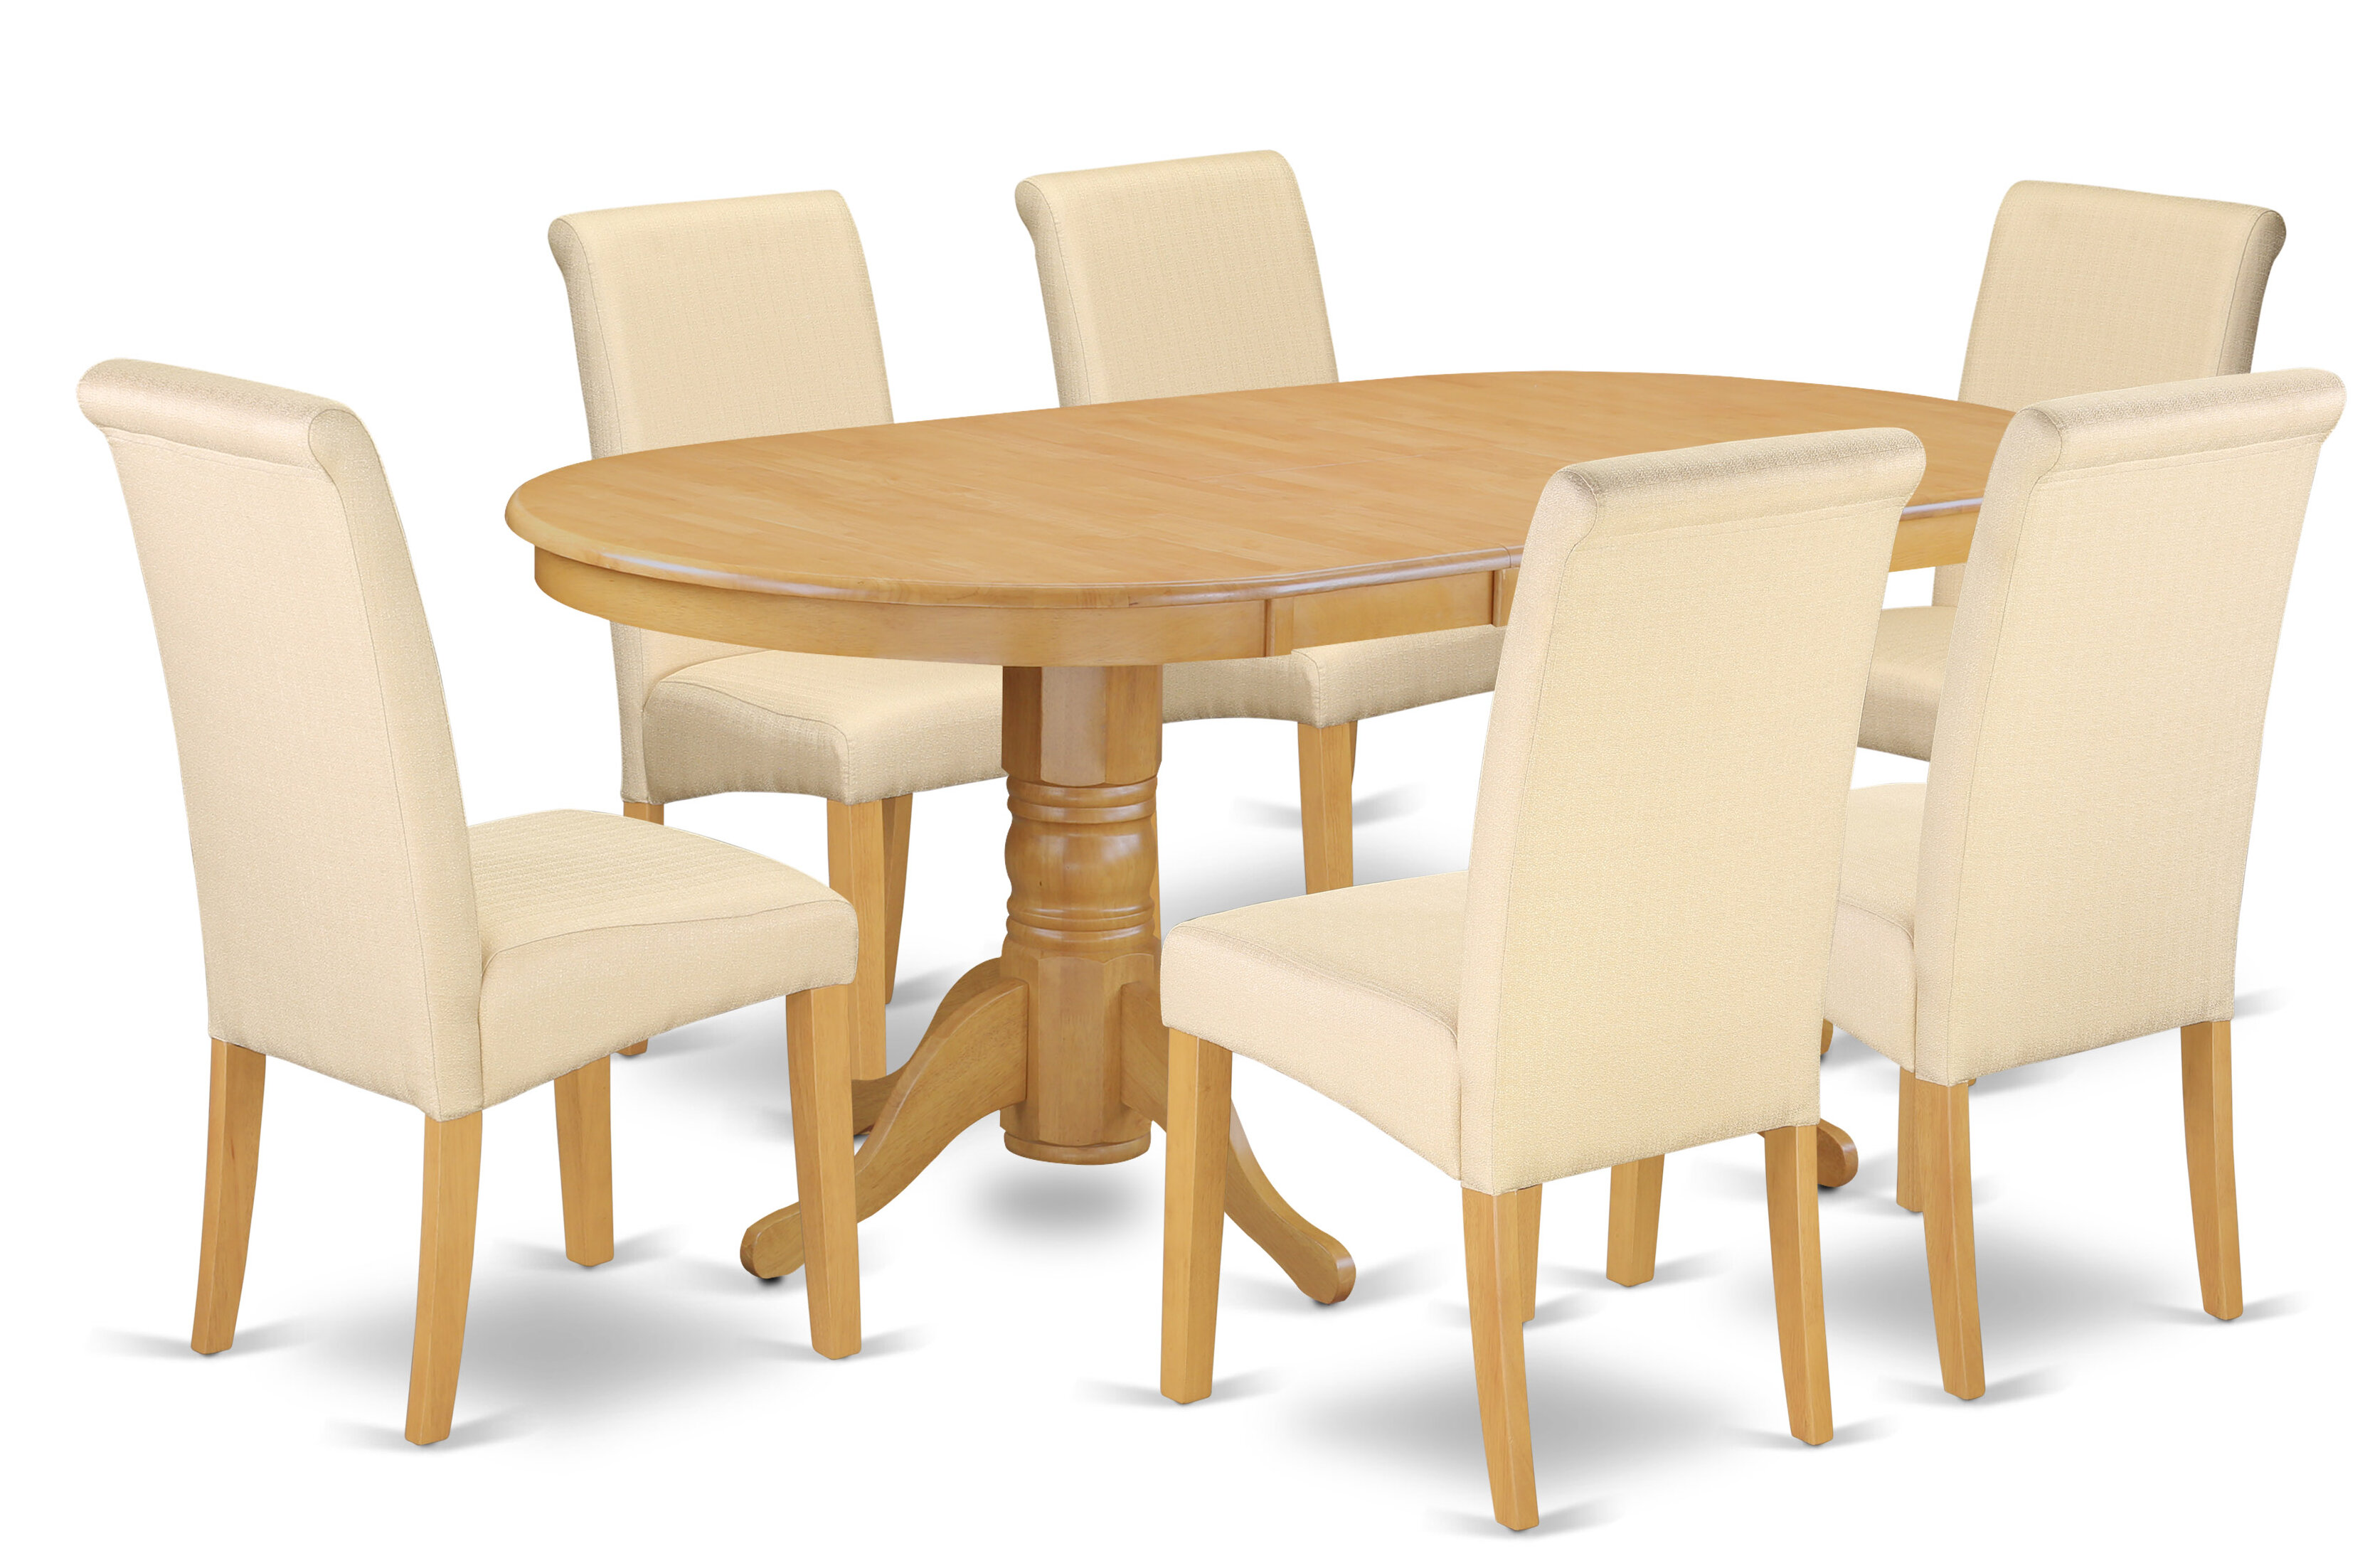 Paras Oval Room Table 7 Piece Extendable Solid Wood Dining Set